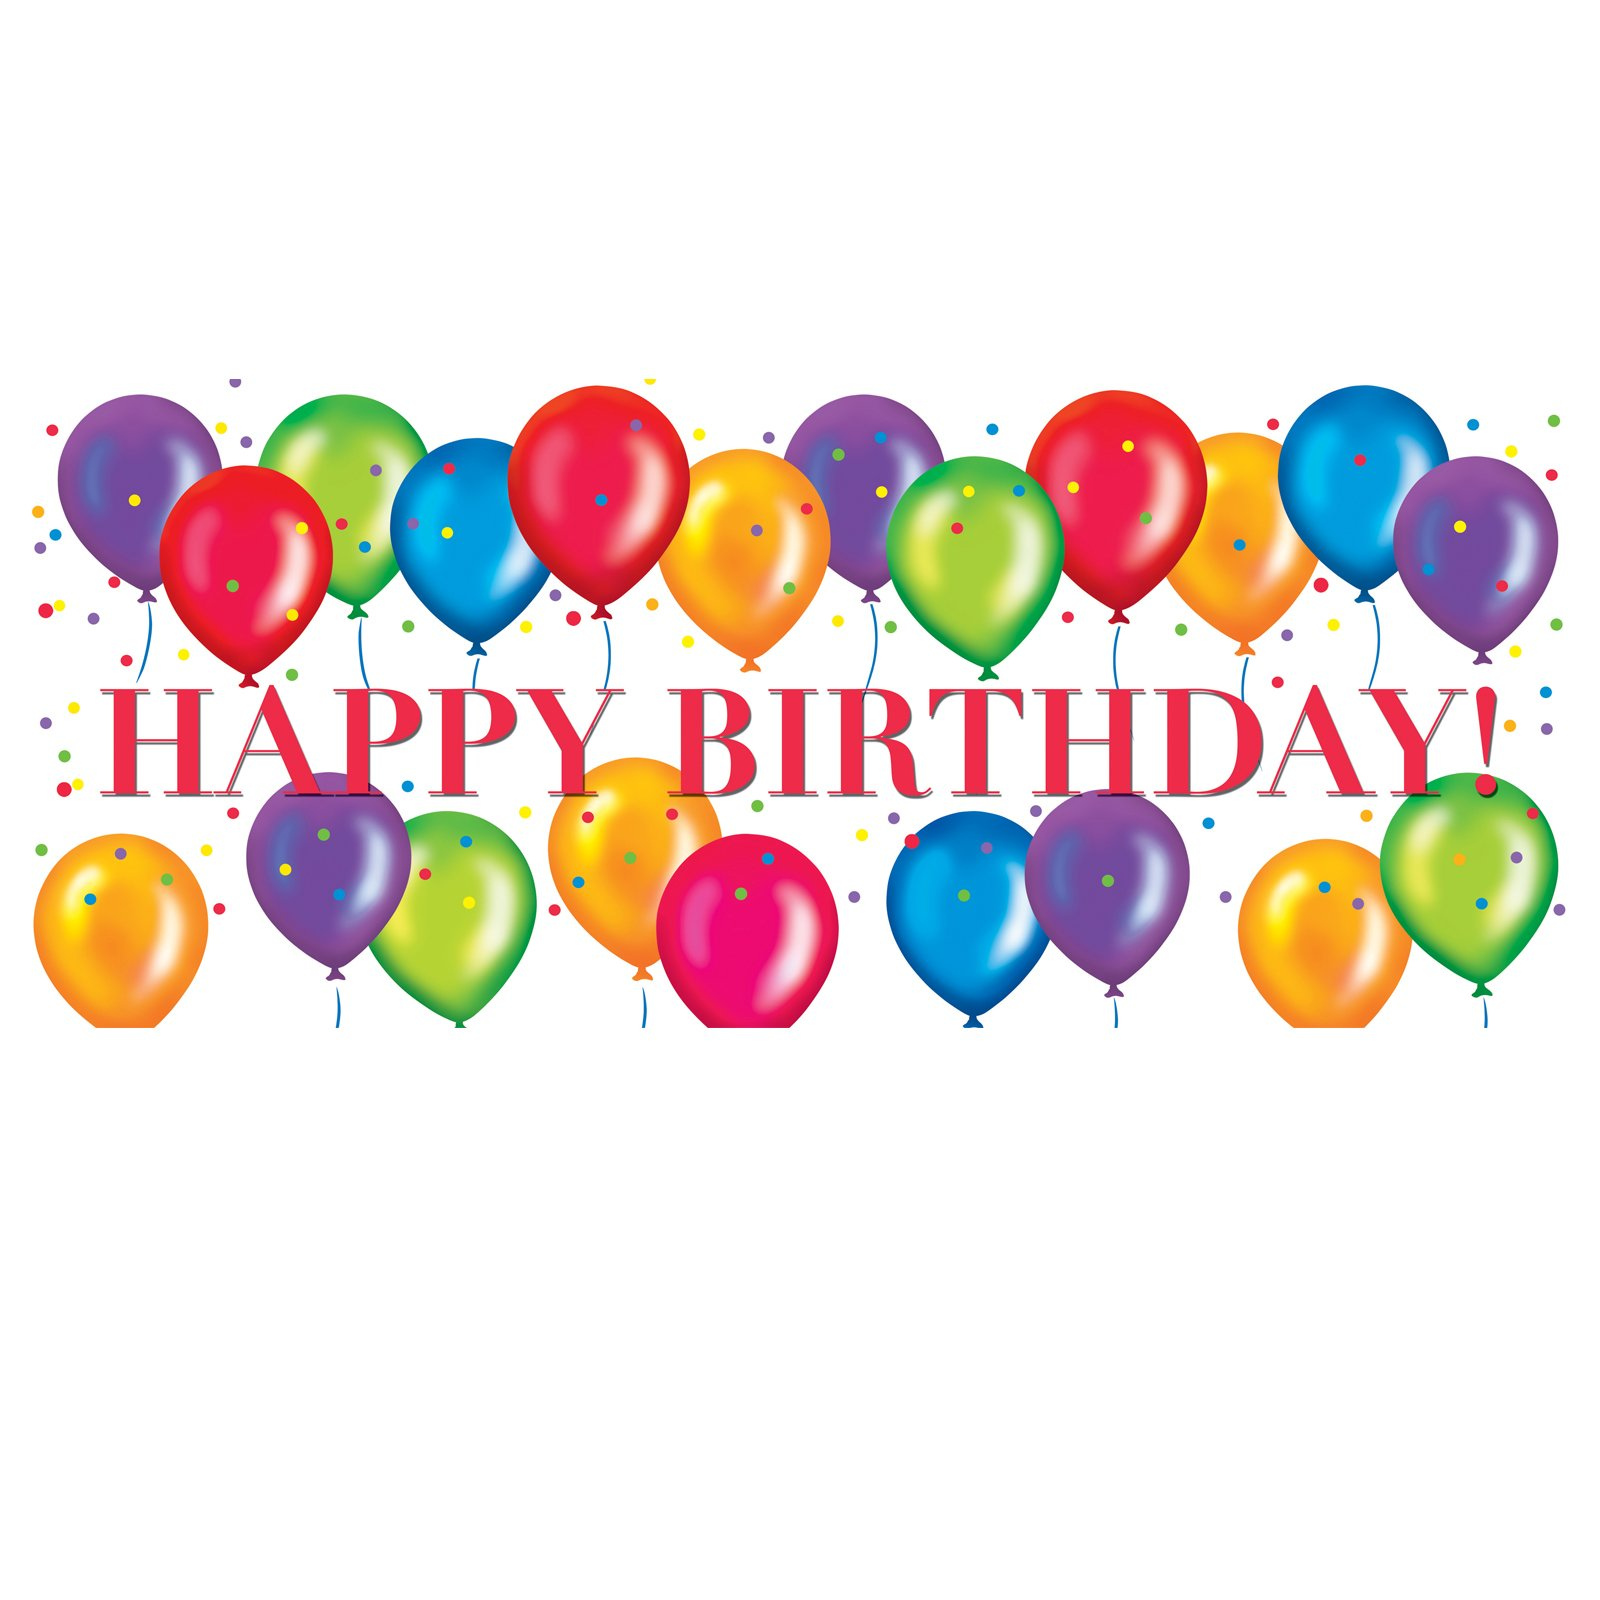 Birthday Banner Clip Art | Clipart library - Free Clipart Images